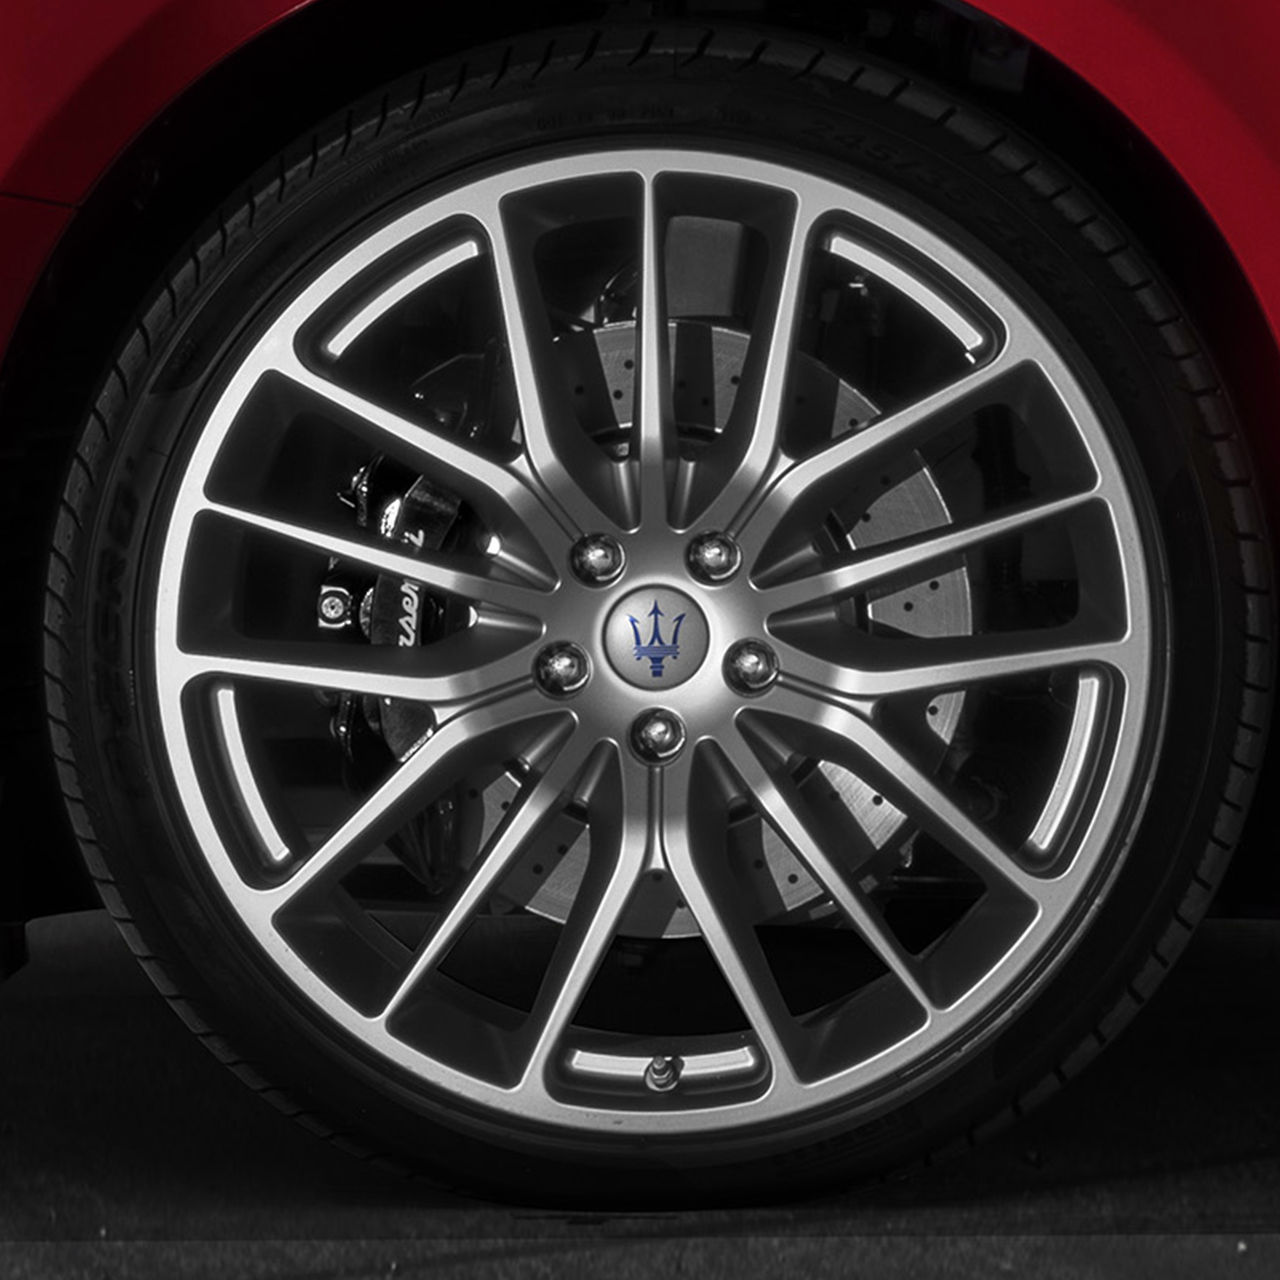 Maserati Ghibli - alloy wheel with Trident's Logo